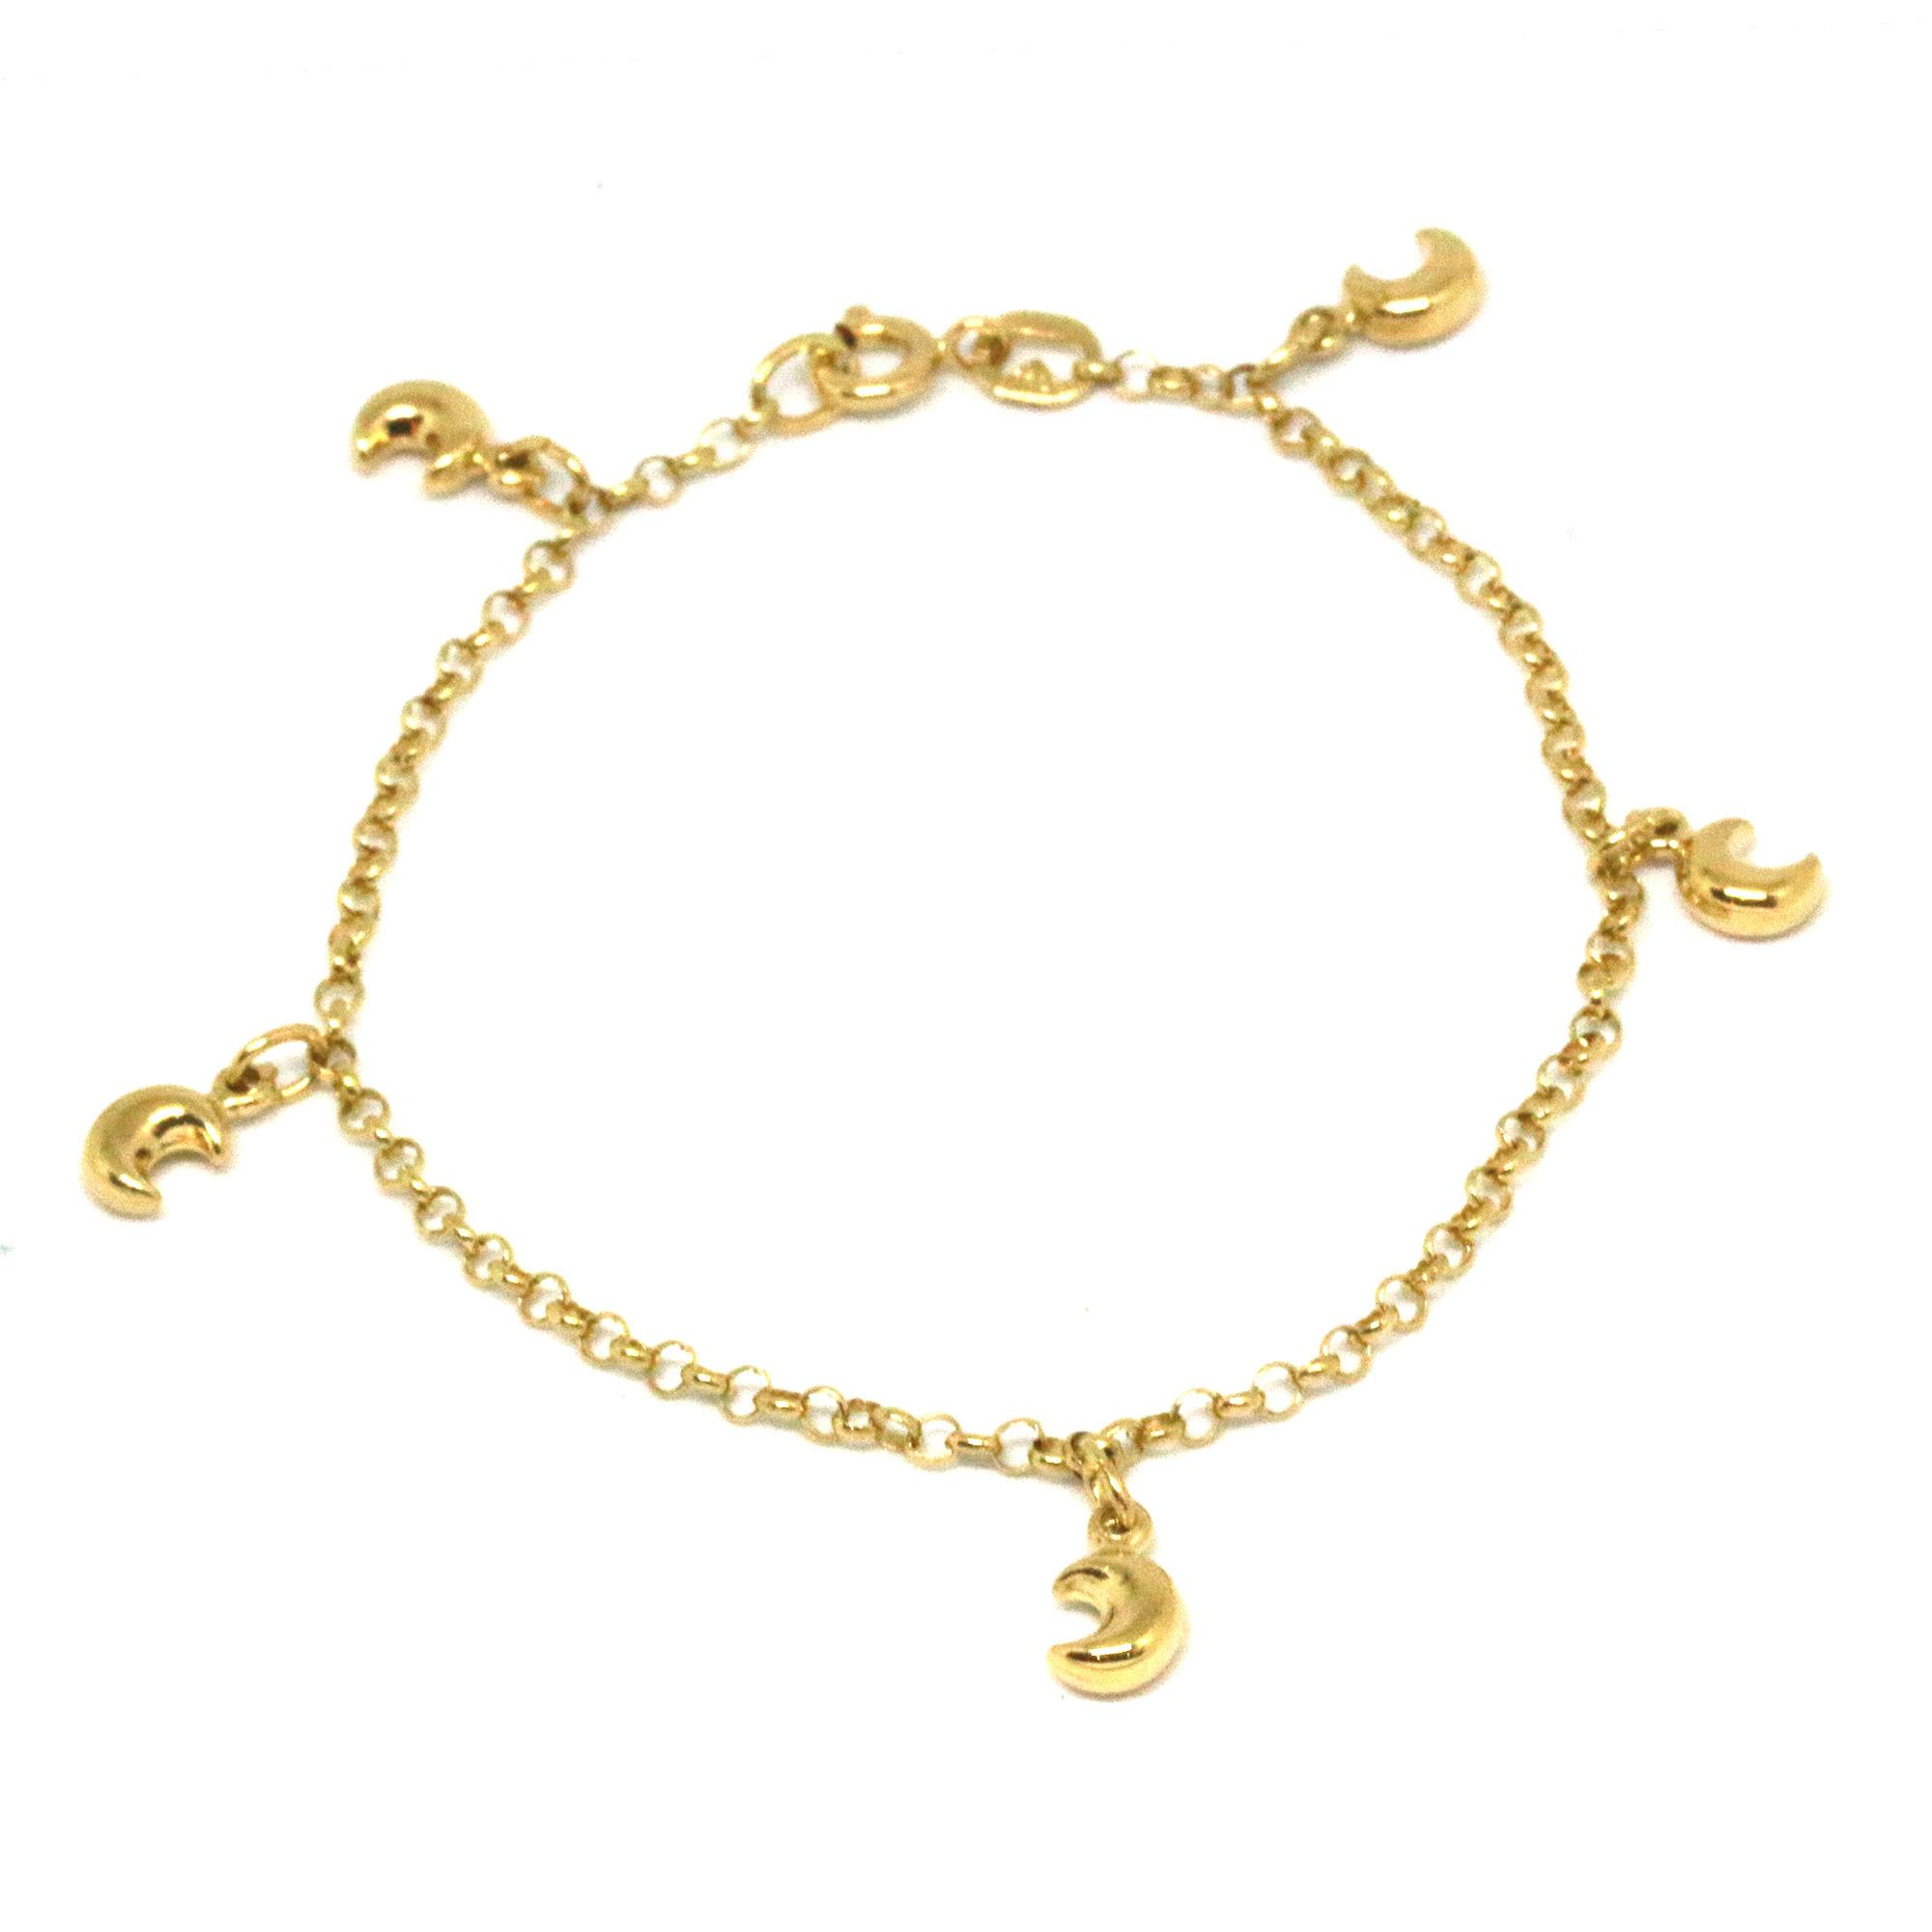 ksvhs jewellery ace gold shopping quick designs anklets anklet womens beautiful